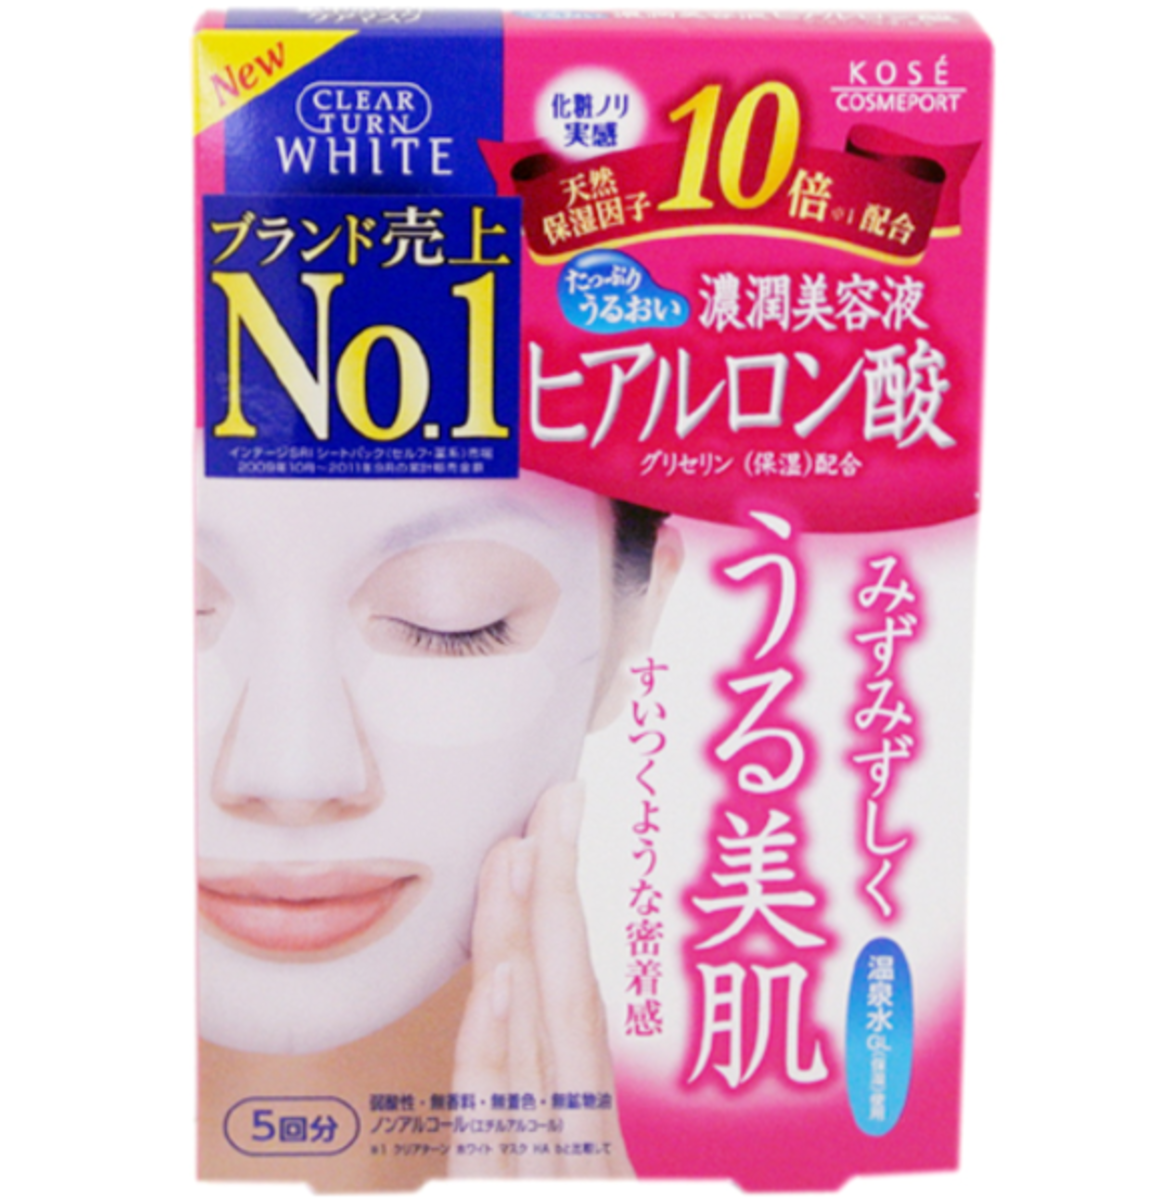 Clear Turn White Hyaluronic Acid Mask (5pcs) x1